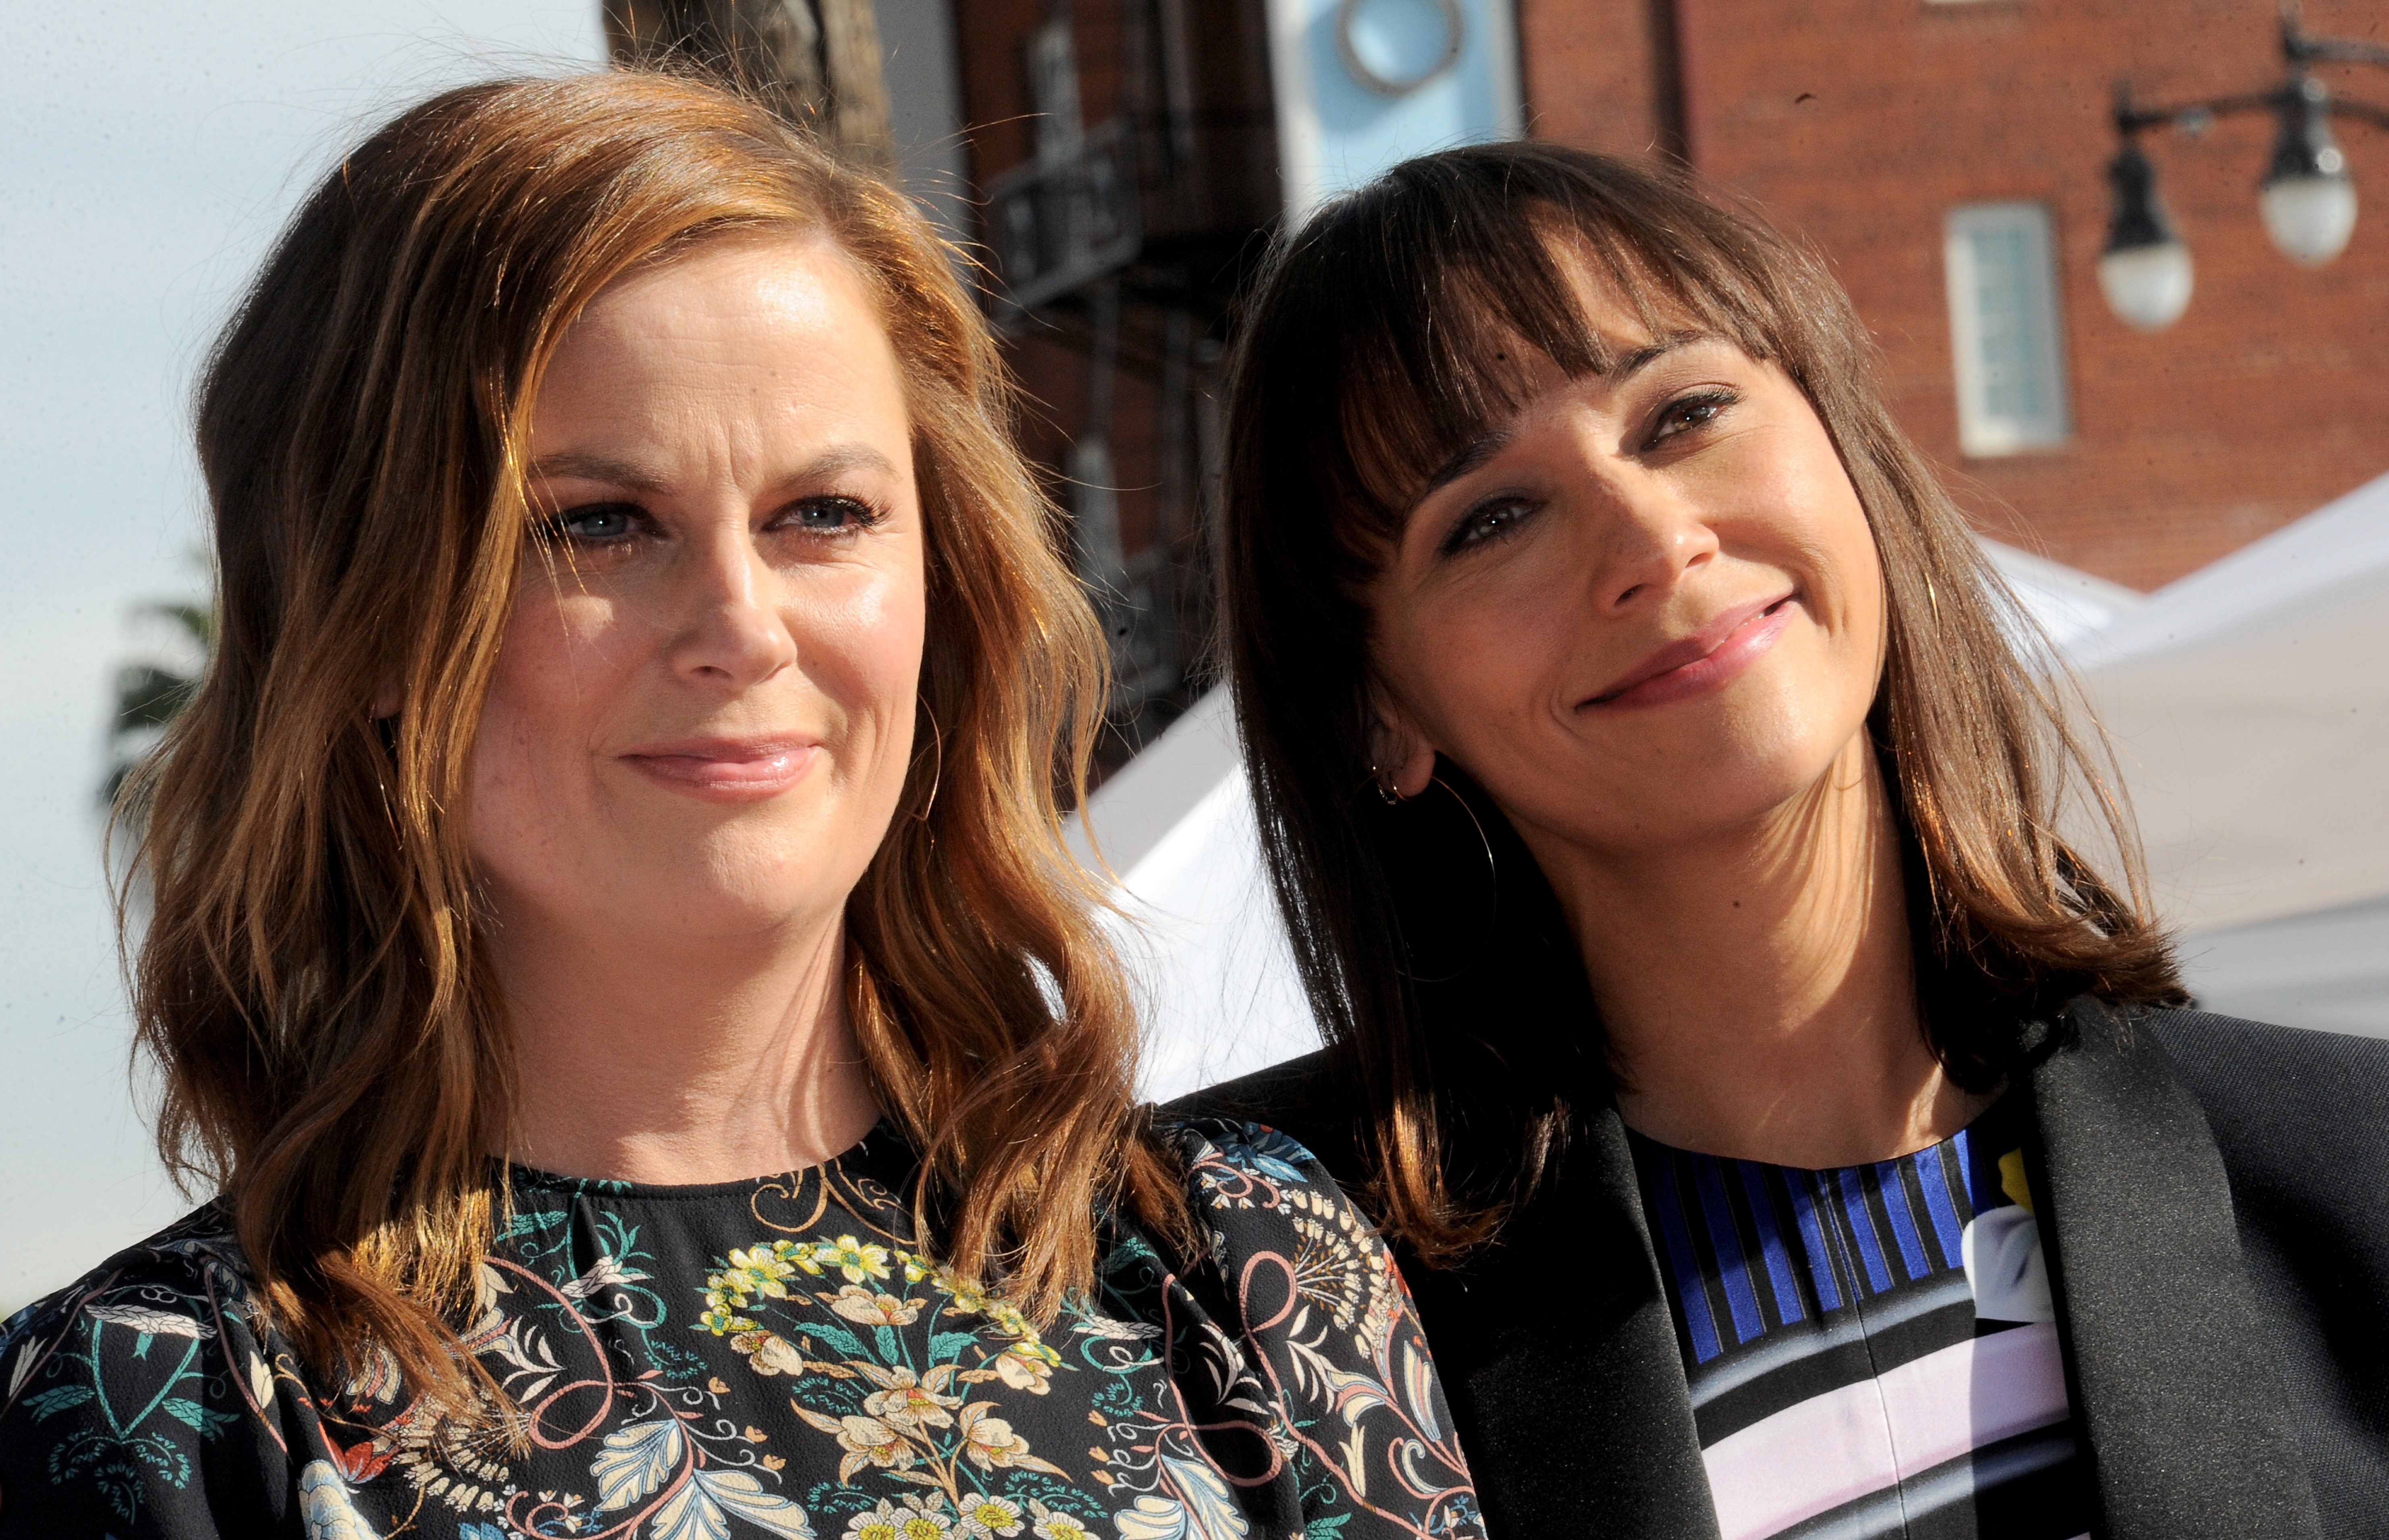 Amy Poehler and Rashida Jones on December 3, 2015 in Hollywood, California | Photo: Getty Images